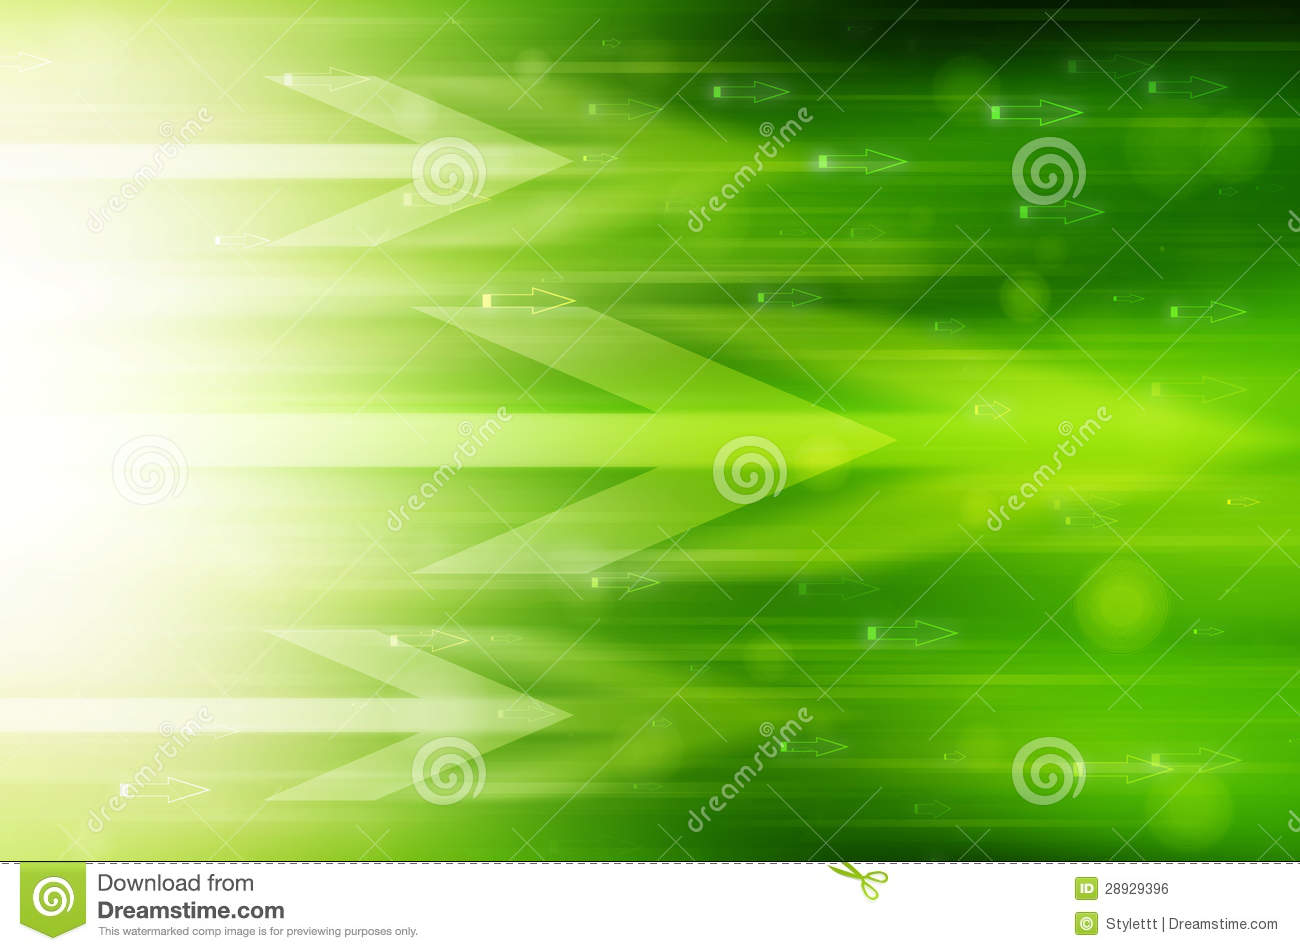 Abstract Green Technology Background Royalty Free Stock